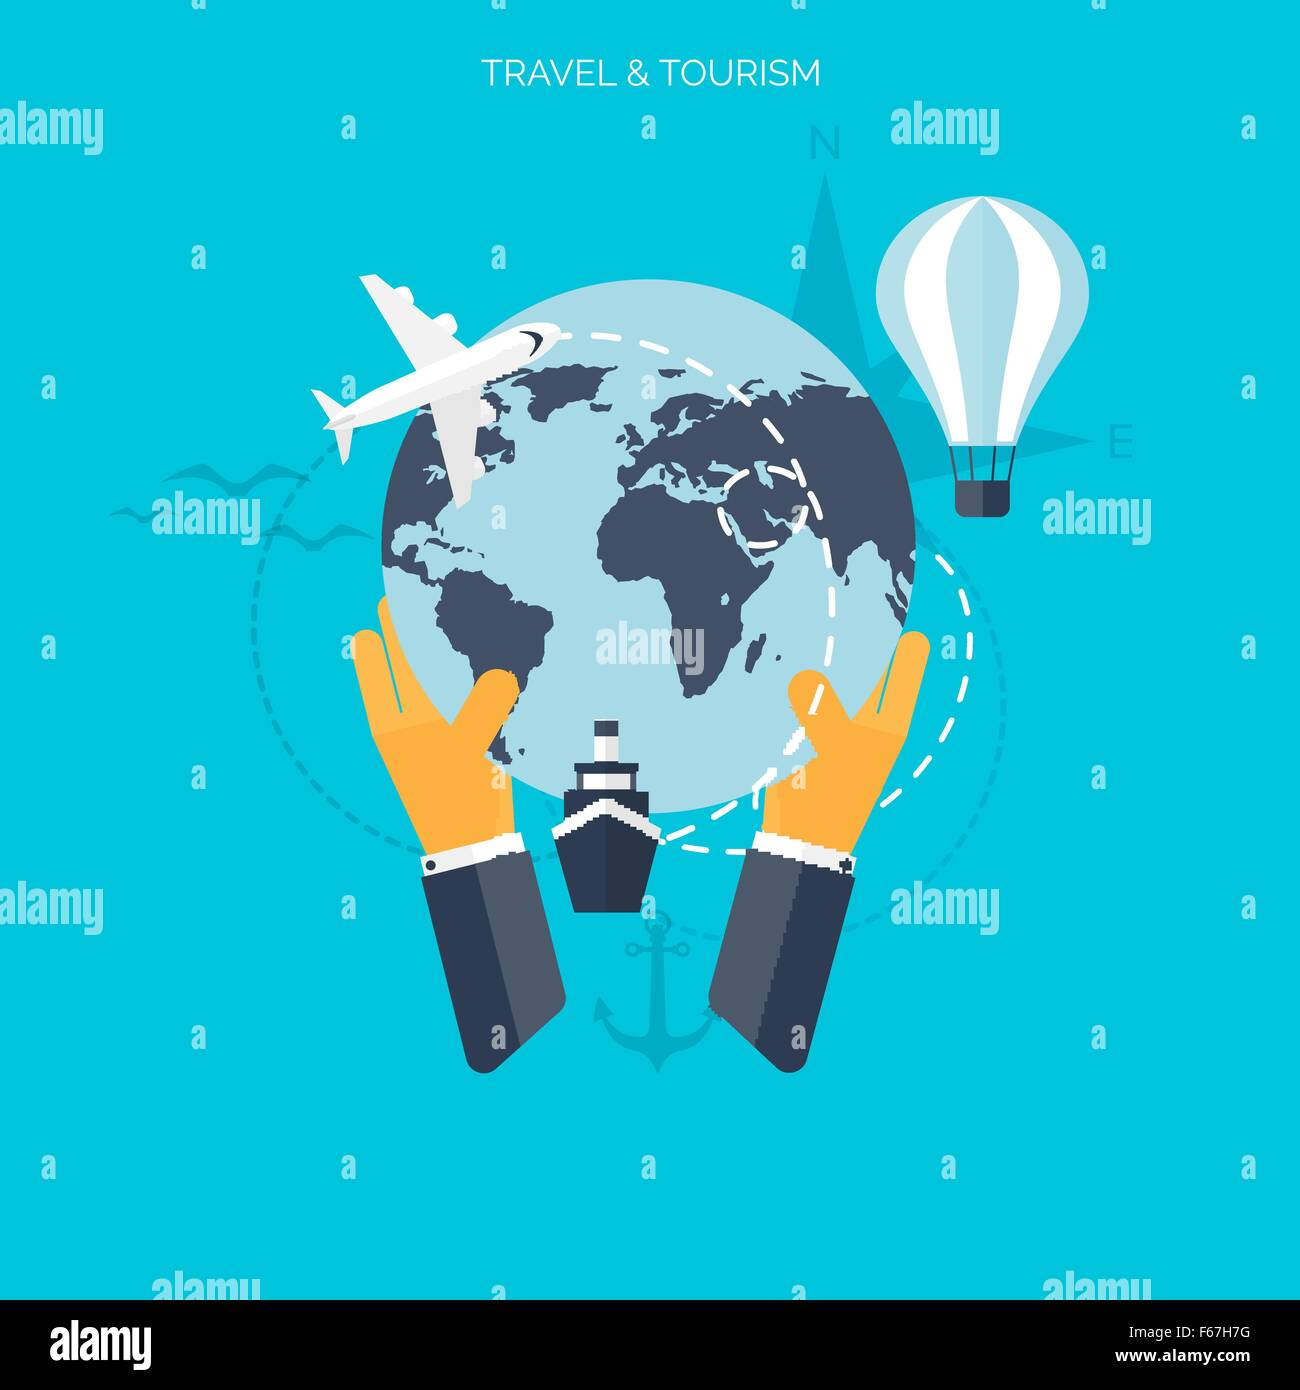 Balloon icon world travel concept background flat icons stock balloon icon world travel concept background flat icons tourisms vacationa ocean land air travelling gumiabroncs Gallery